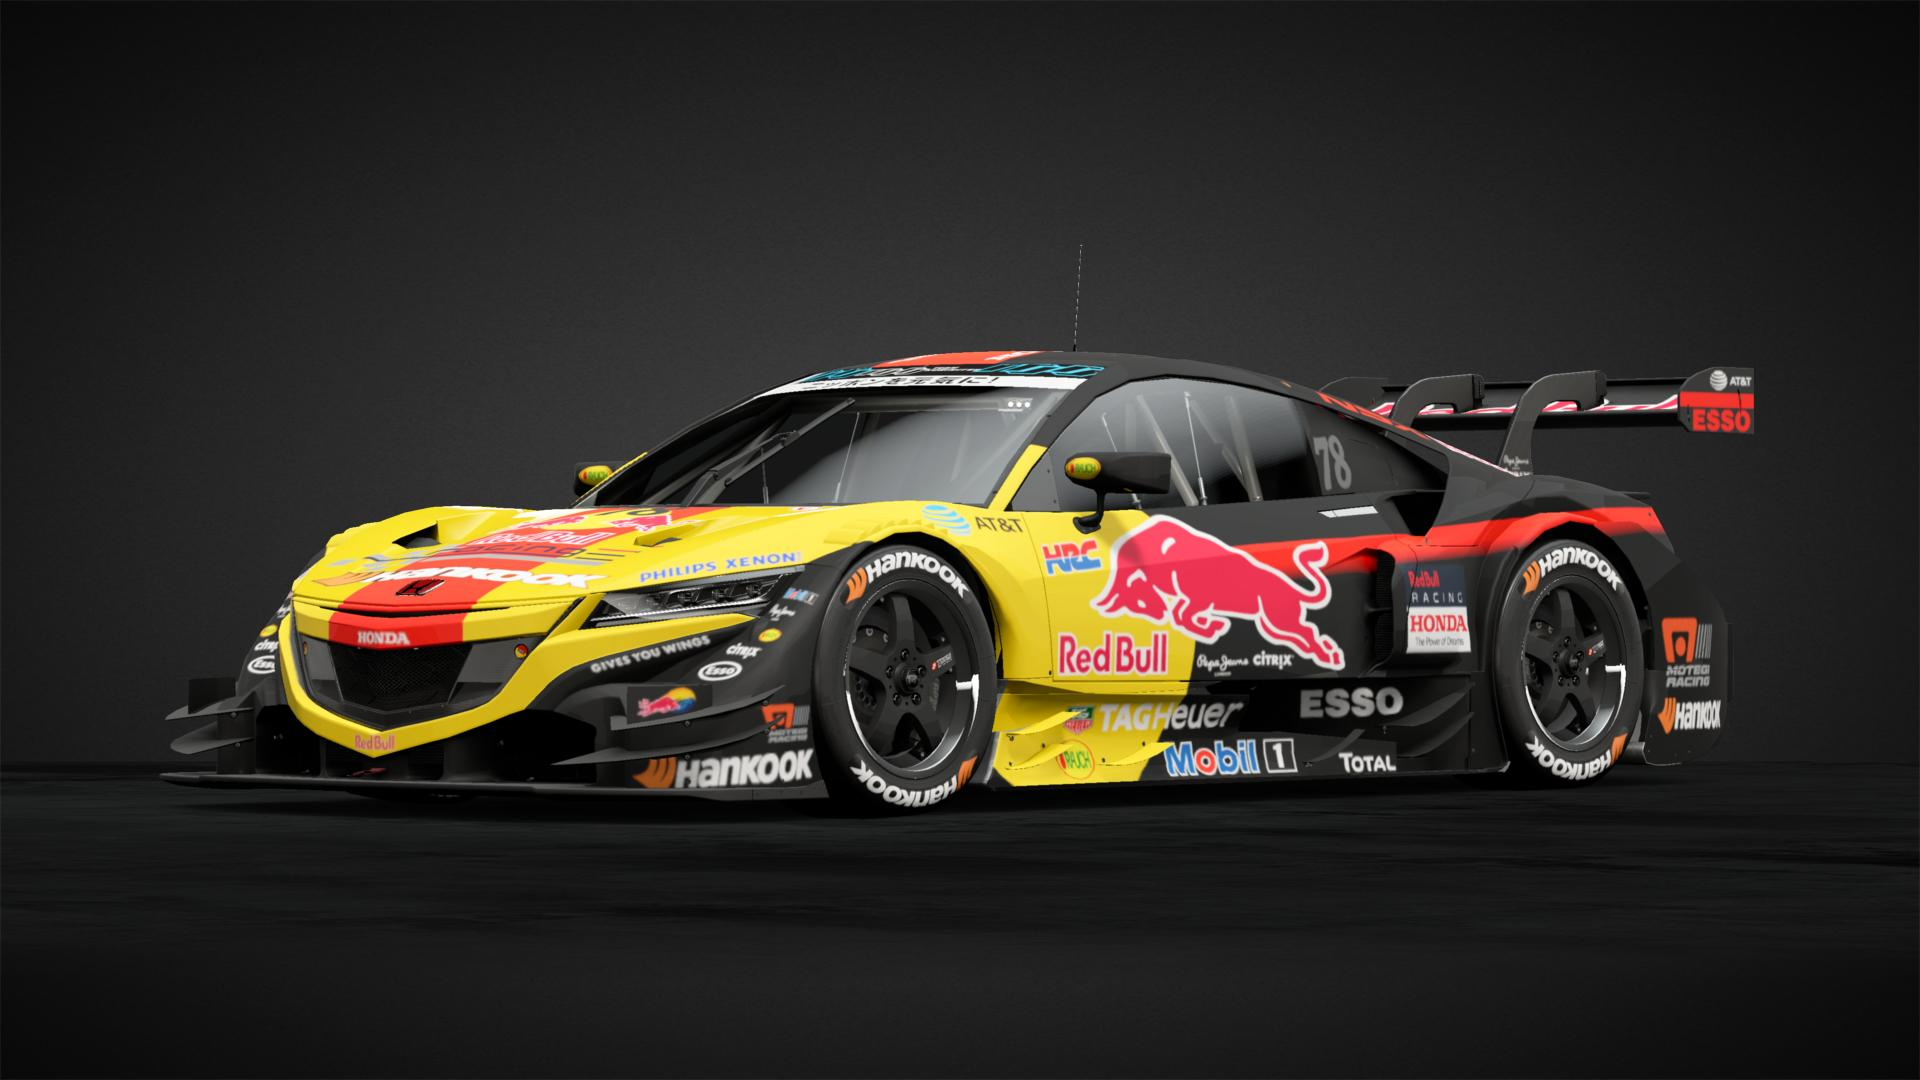 Collection nsx gt 500 - Car Livery by topgunn74   Community   Gran